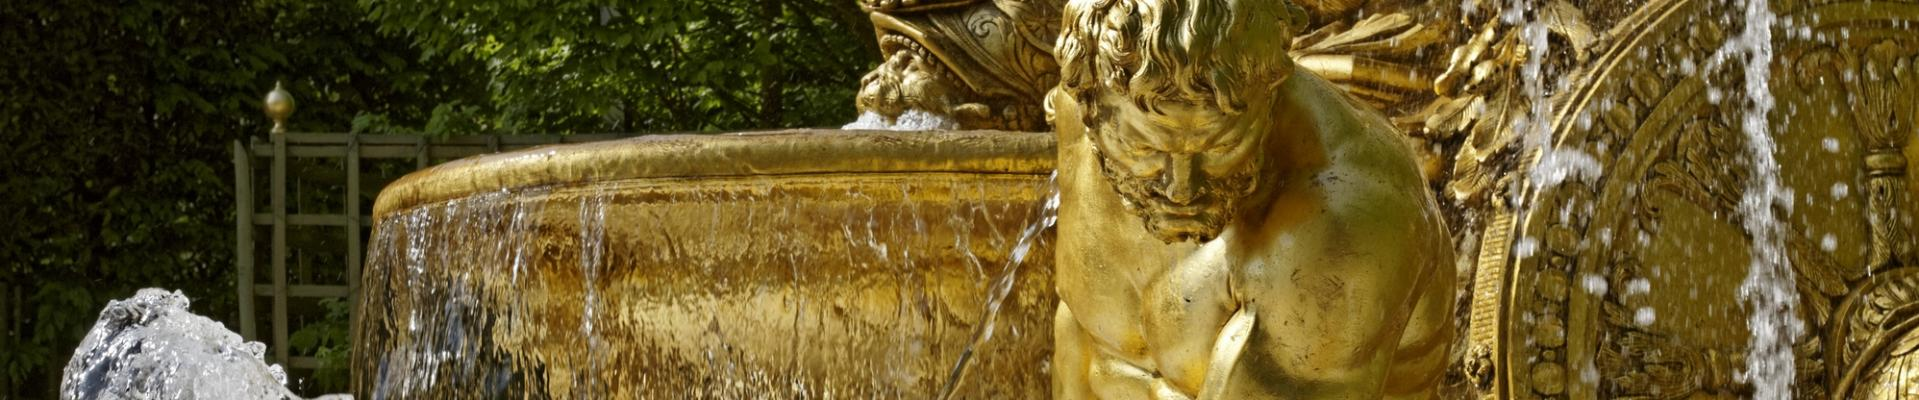 'Palace of Versailles' from the web at 'http://en.chateauversailles.fr/sites/all/themes/versailles/images/espace-abonne.jpg'